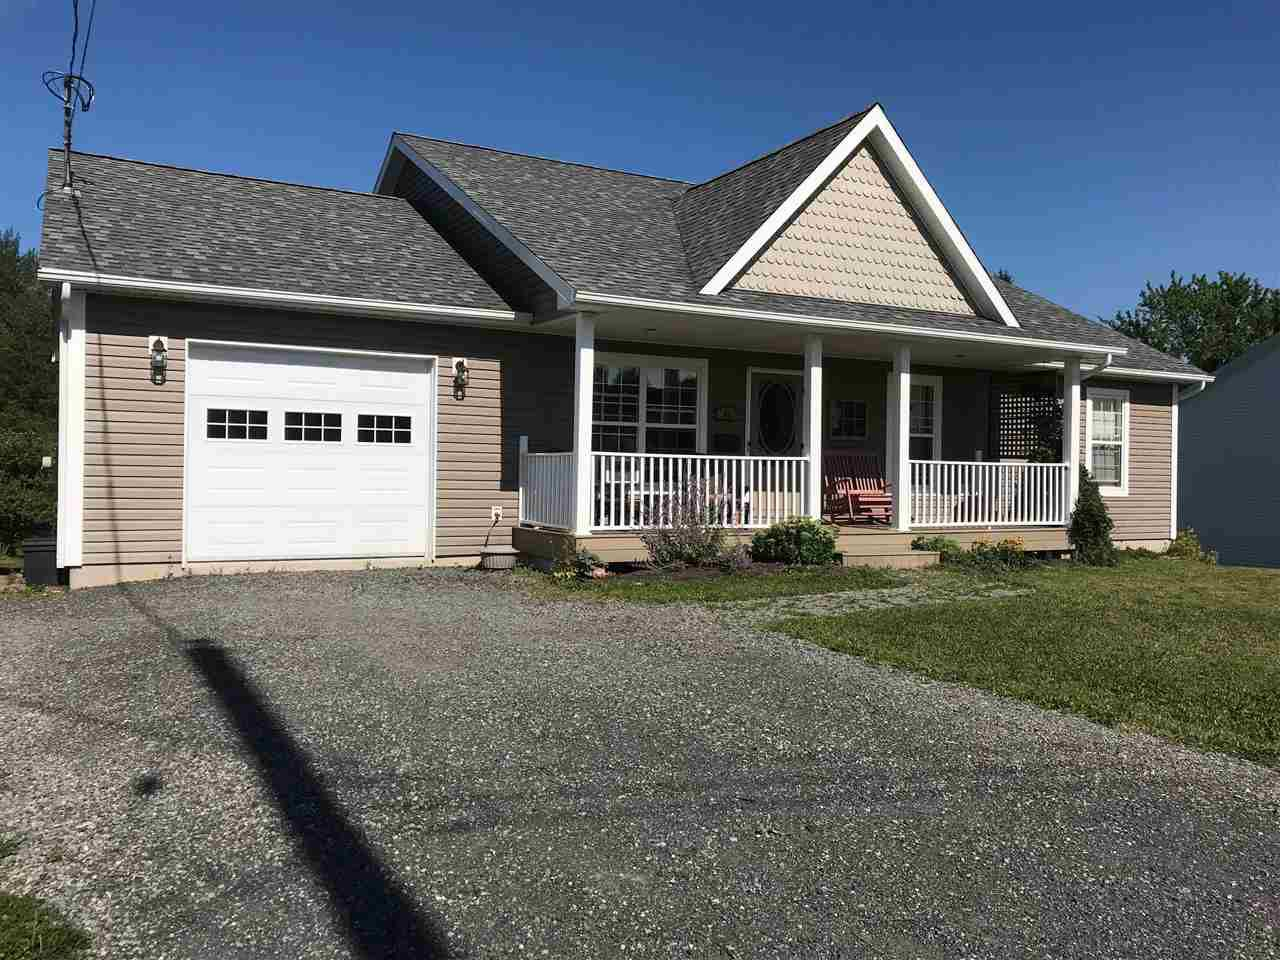 Main Photo: 41 Lovat Crescent in New Glasgow: 106-New Glasgow, Stellarton Residential for sale (Northern Region)  : MLS®# 201810053